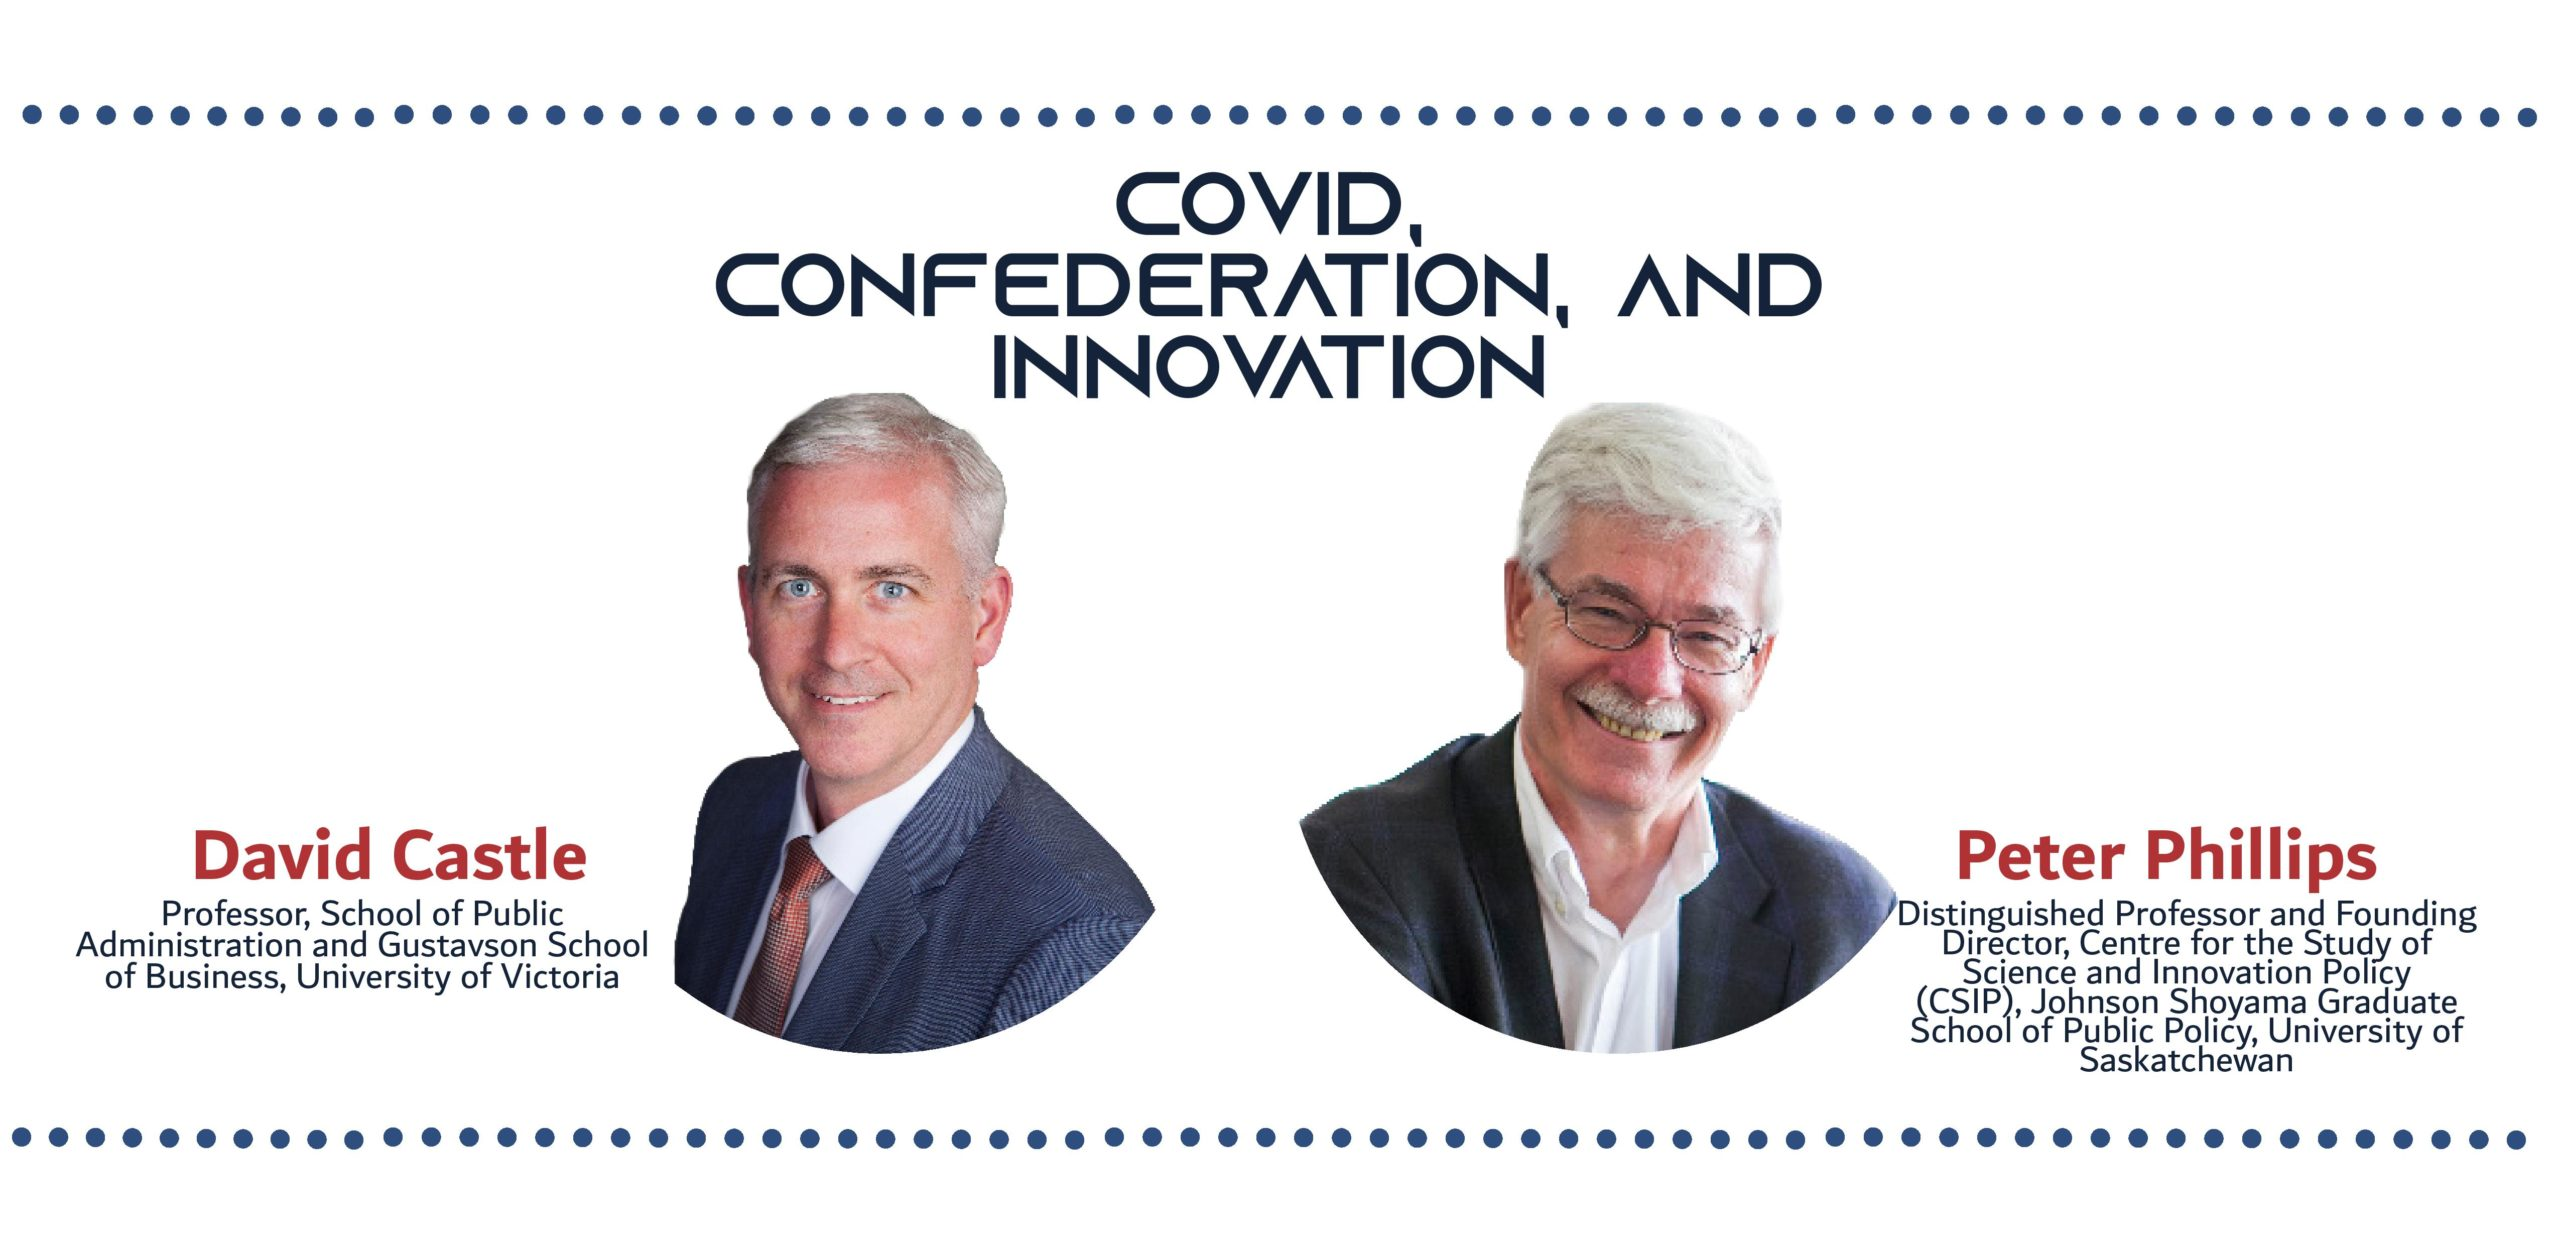 Picture of two white men with the text: COVID, Confederation, and Innovation David Castle: Professor, School of Public Administration and Gustavson School of Business, University of Victoria Peter Phillips Ph.D.: Distinguished Professor and founding director, Centre for the Study of Science and Innovation Policy (CSIP), Johnson Shoyama Graduate School of Public Policy, University of Saskatchewan